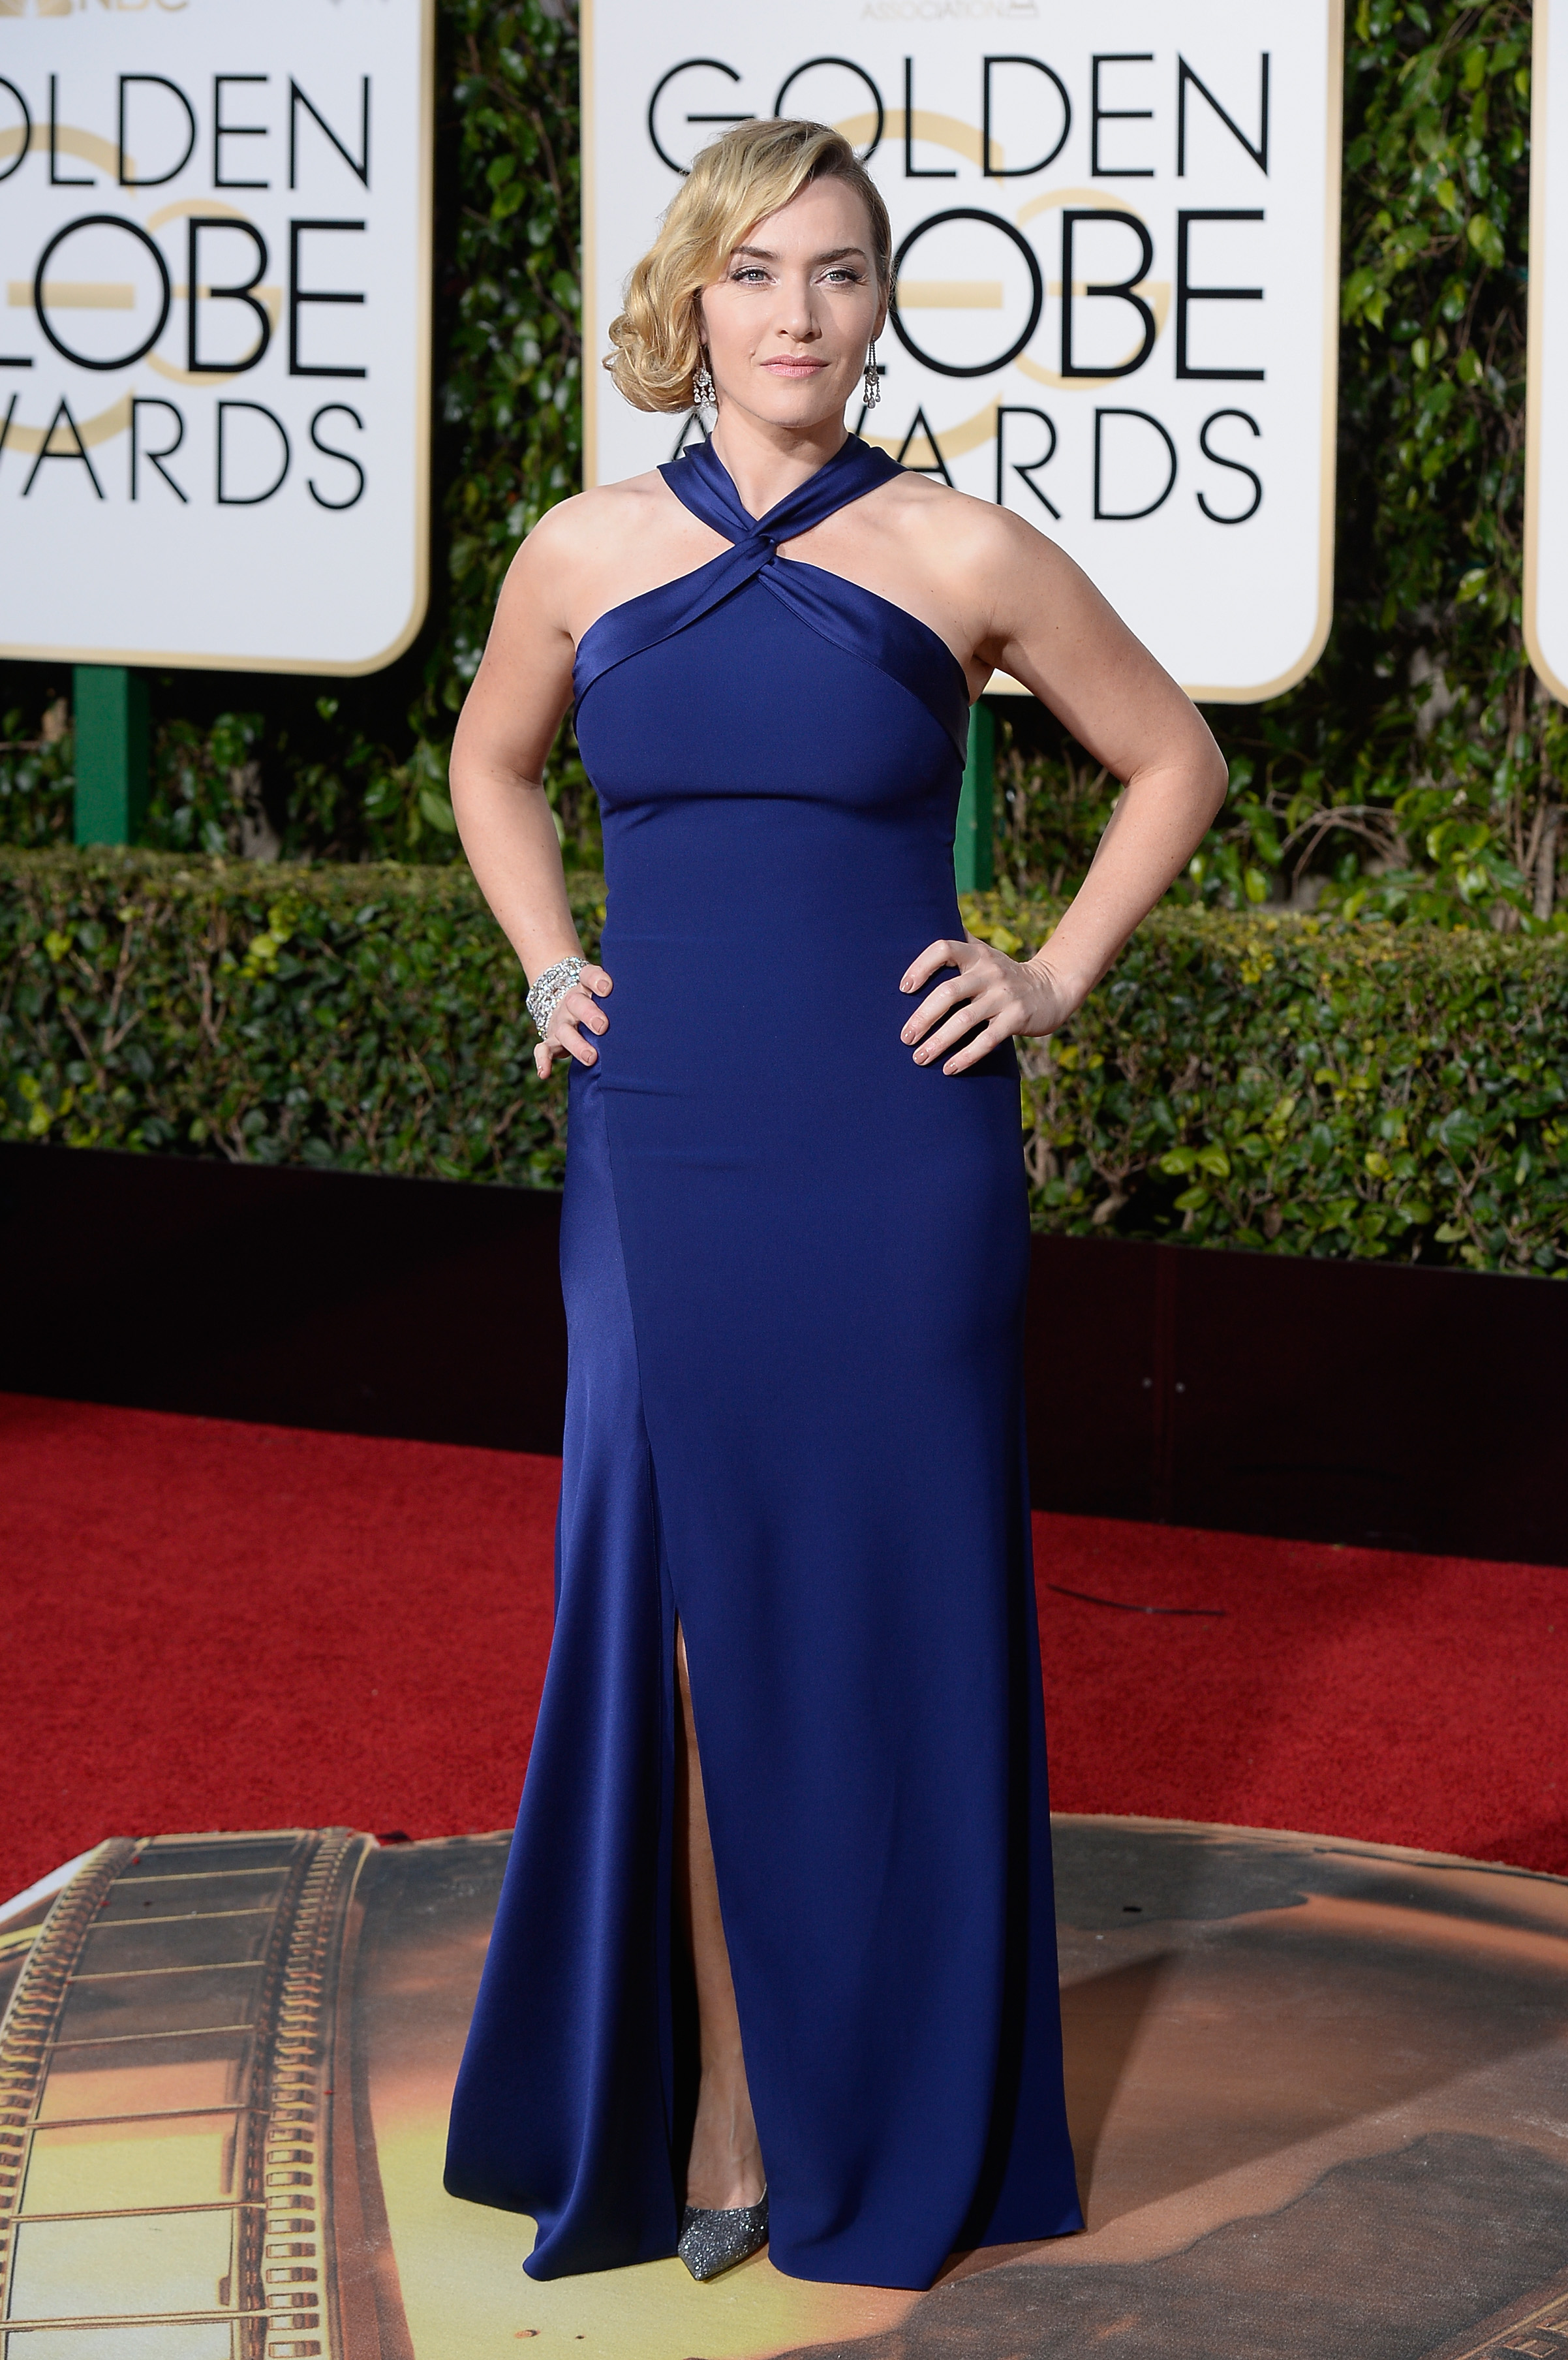 Kate Winslet arrives to the 73rd Annual Golden Globe Awards on Jan. 10, 2016 in Beverly Hills.